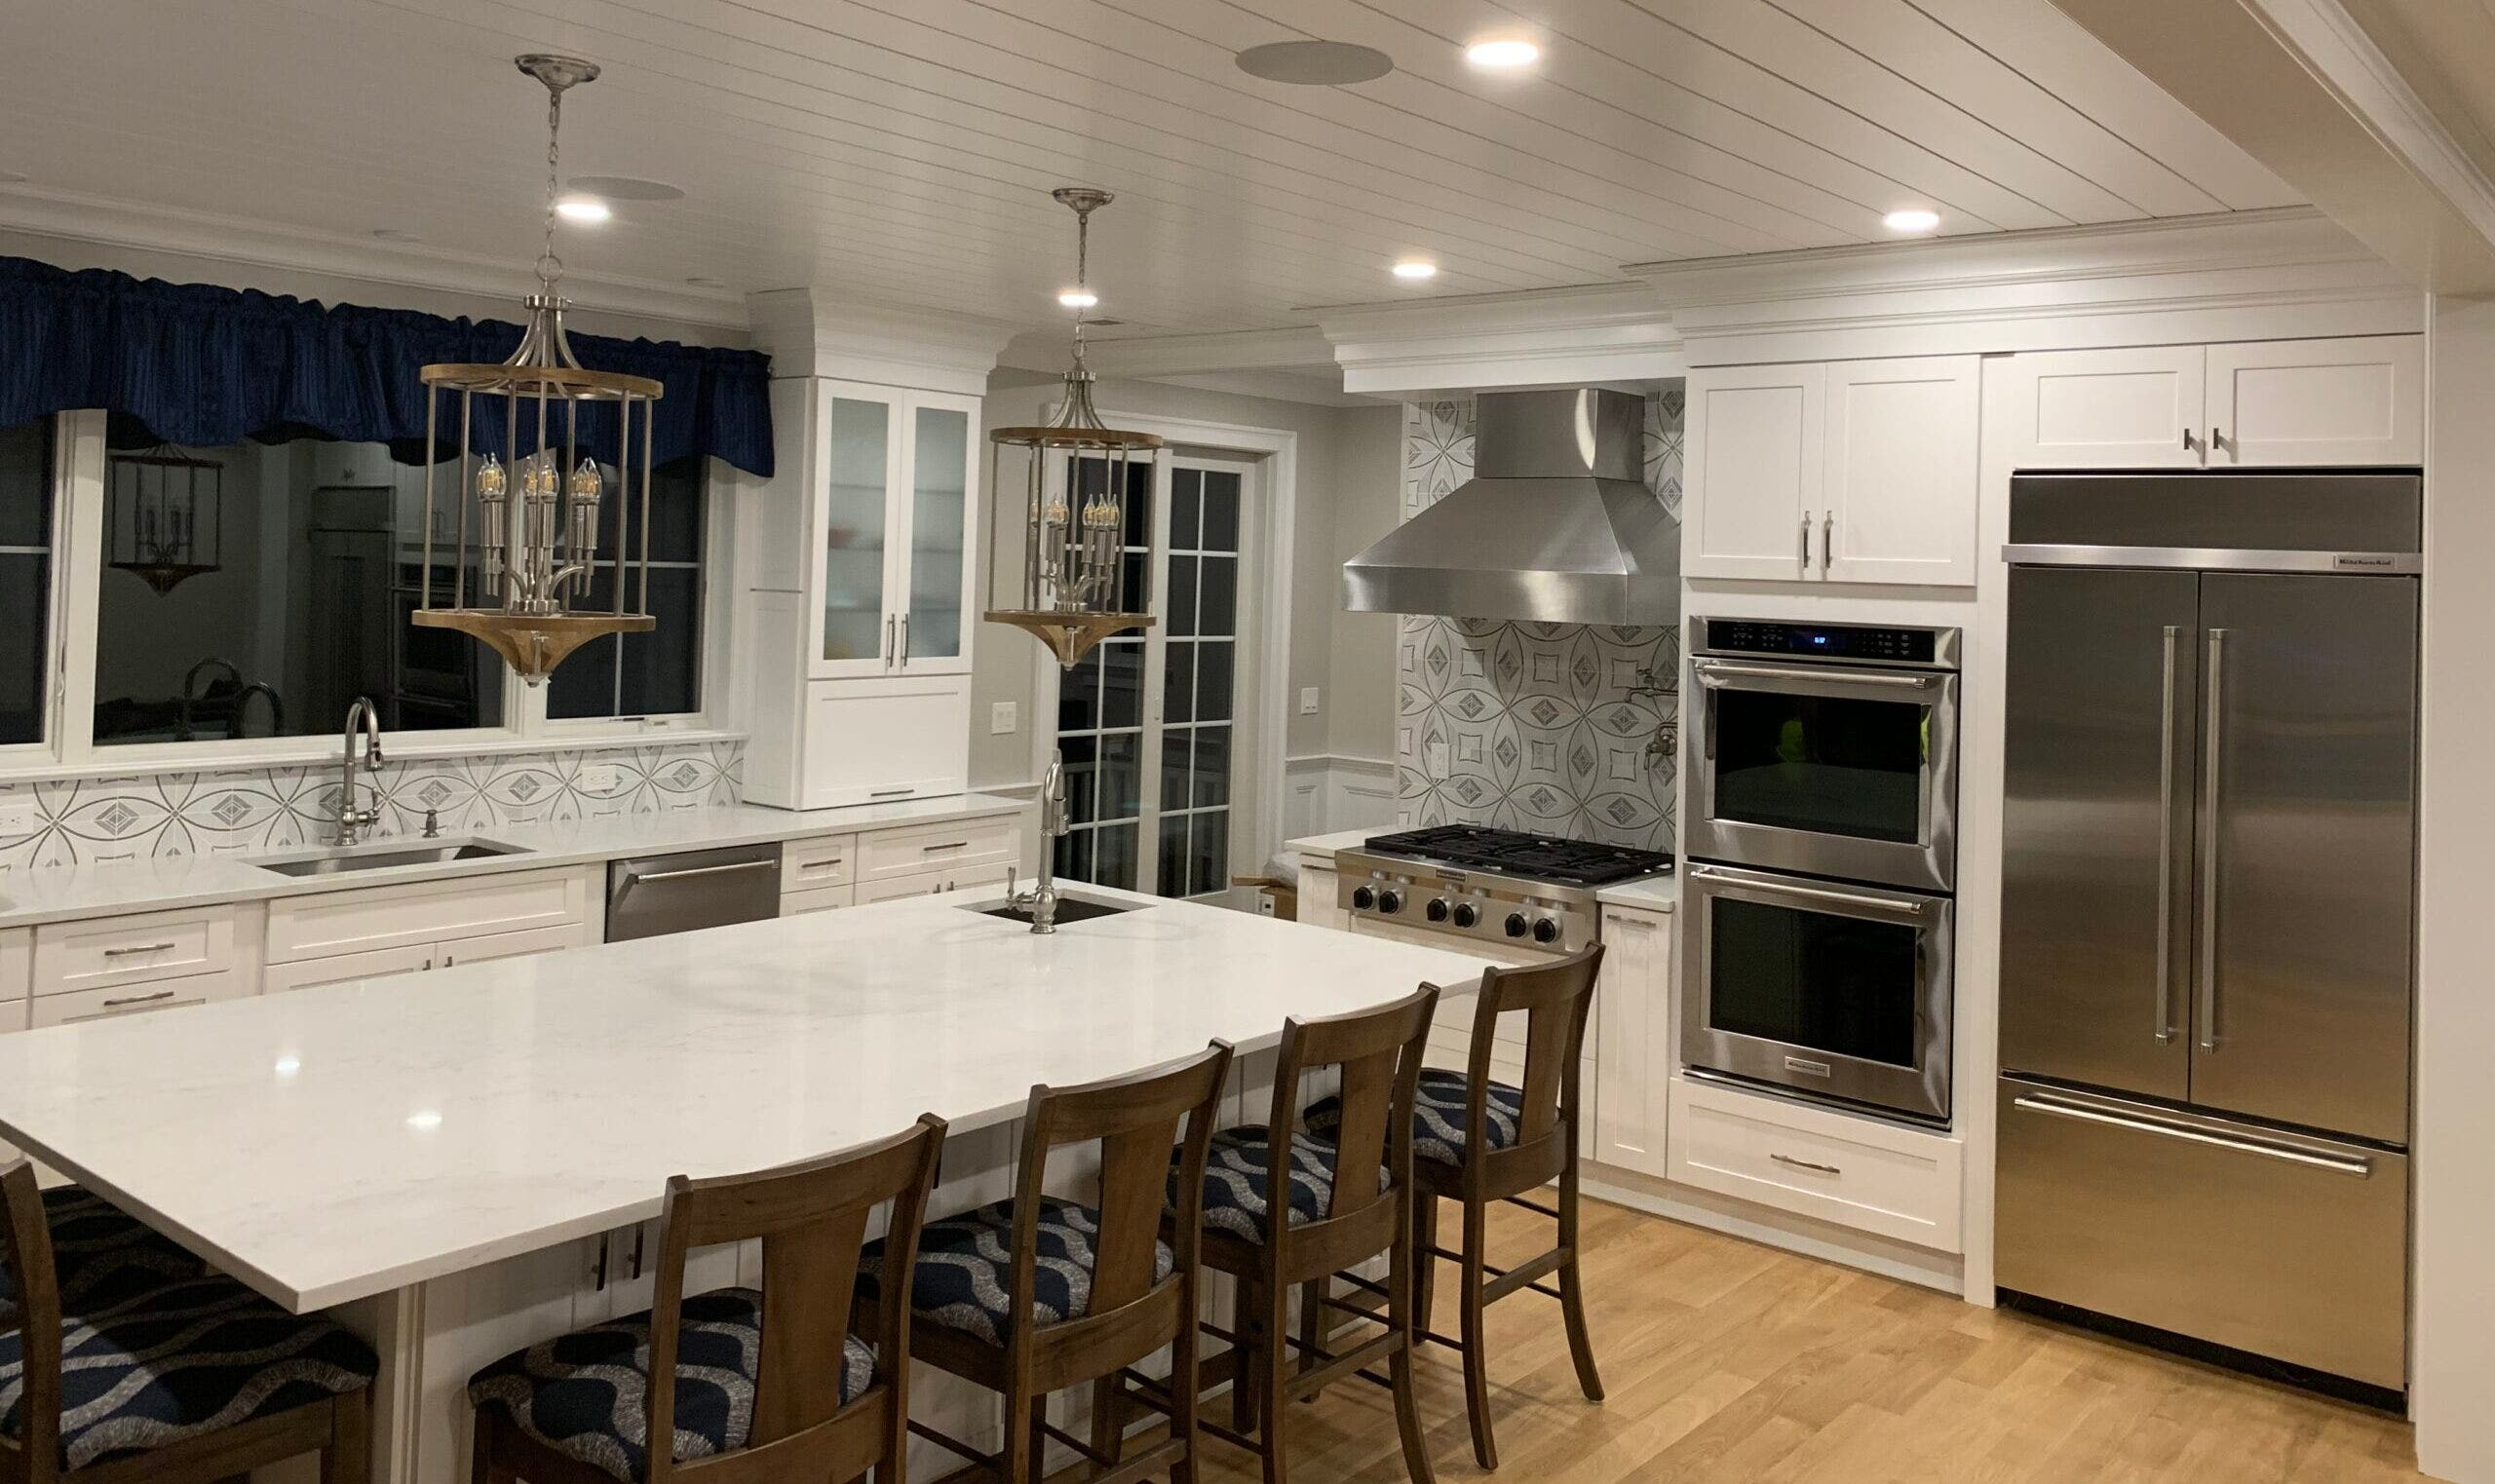 How To Install A Proline Wall Or Under Cabinet Range Hood